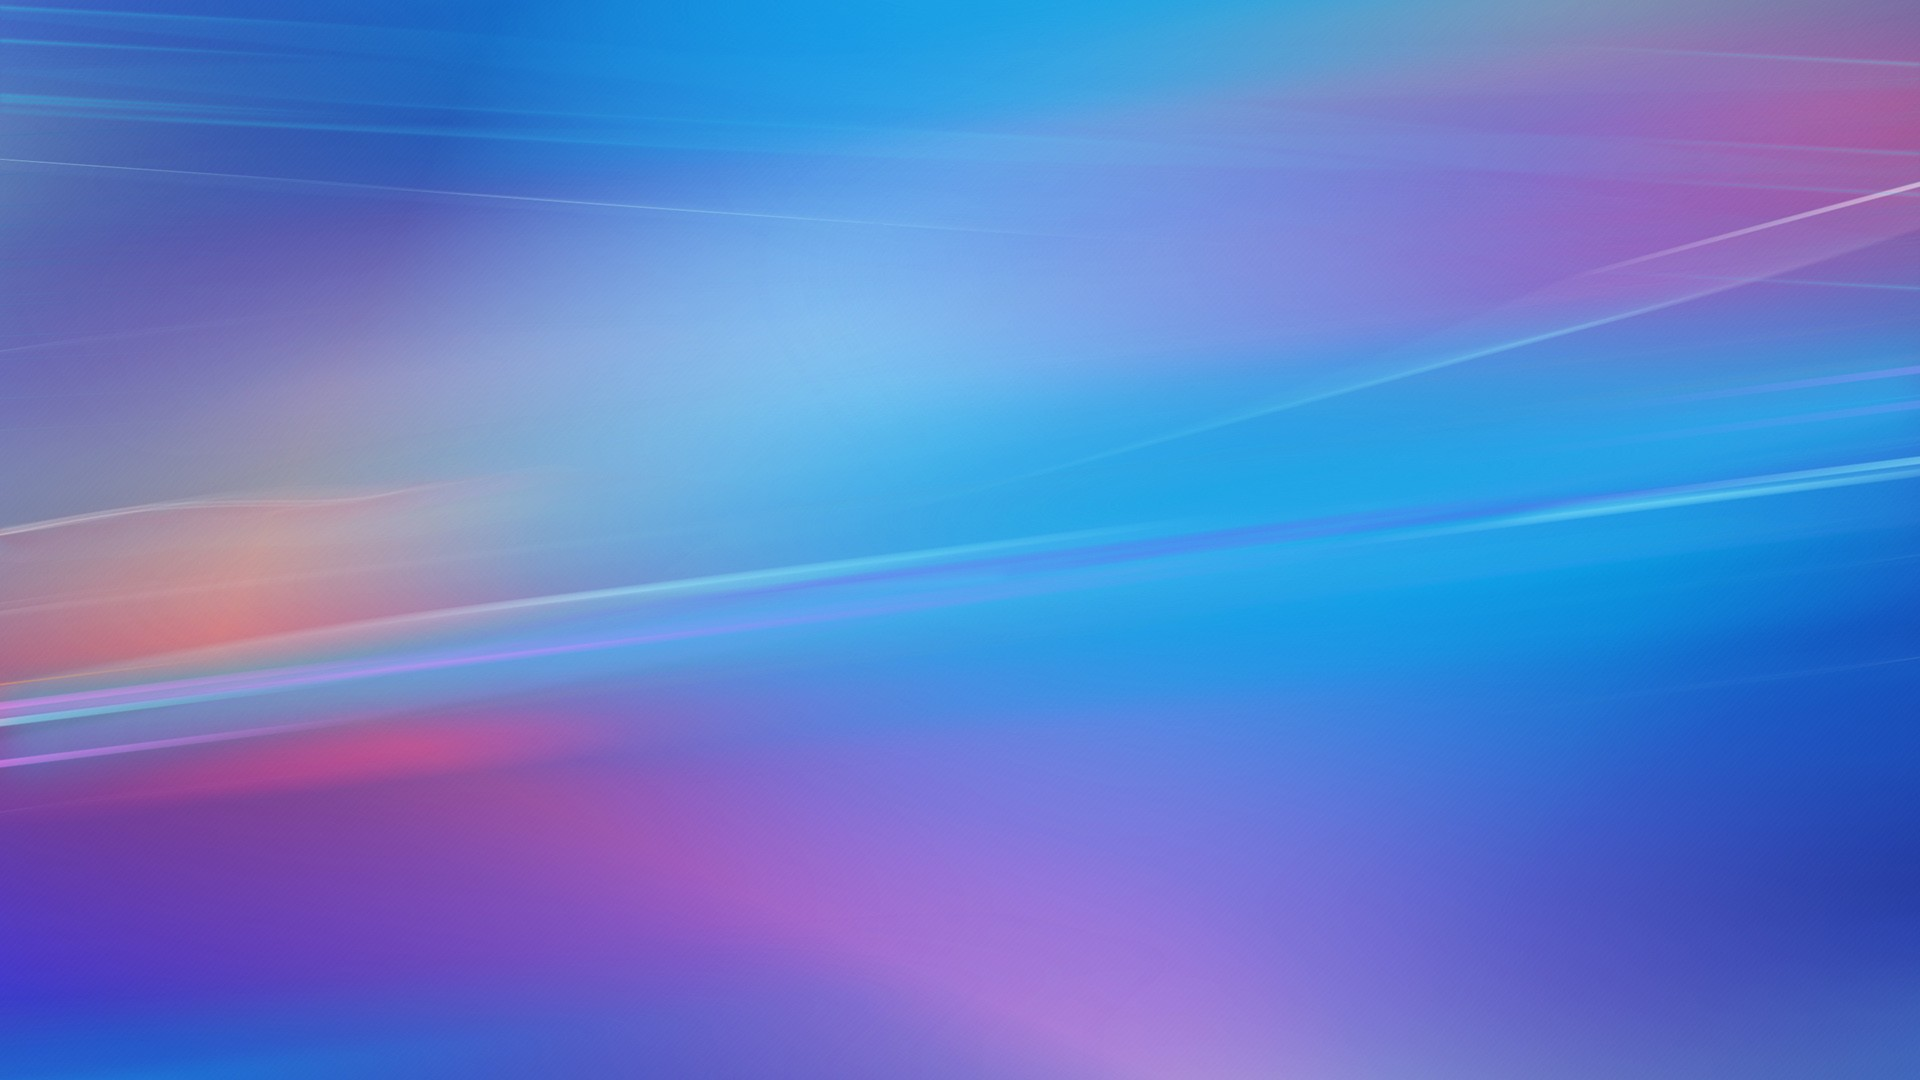 Gradient laptop background wallpaper